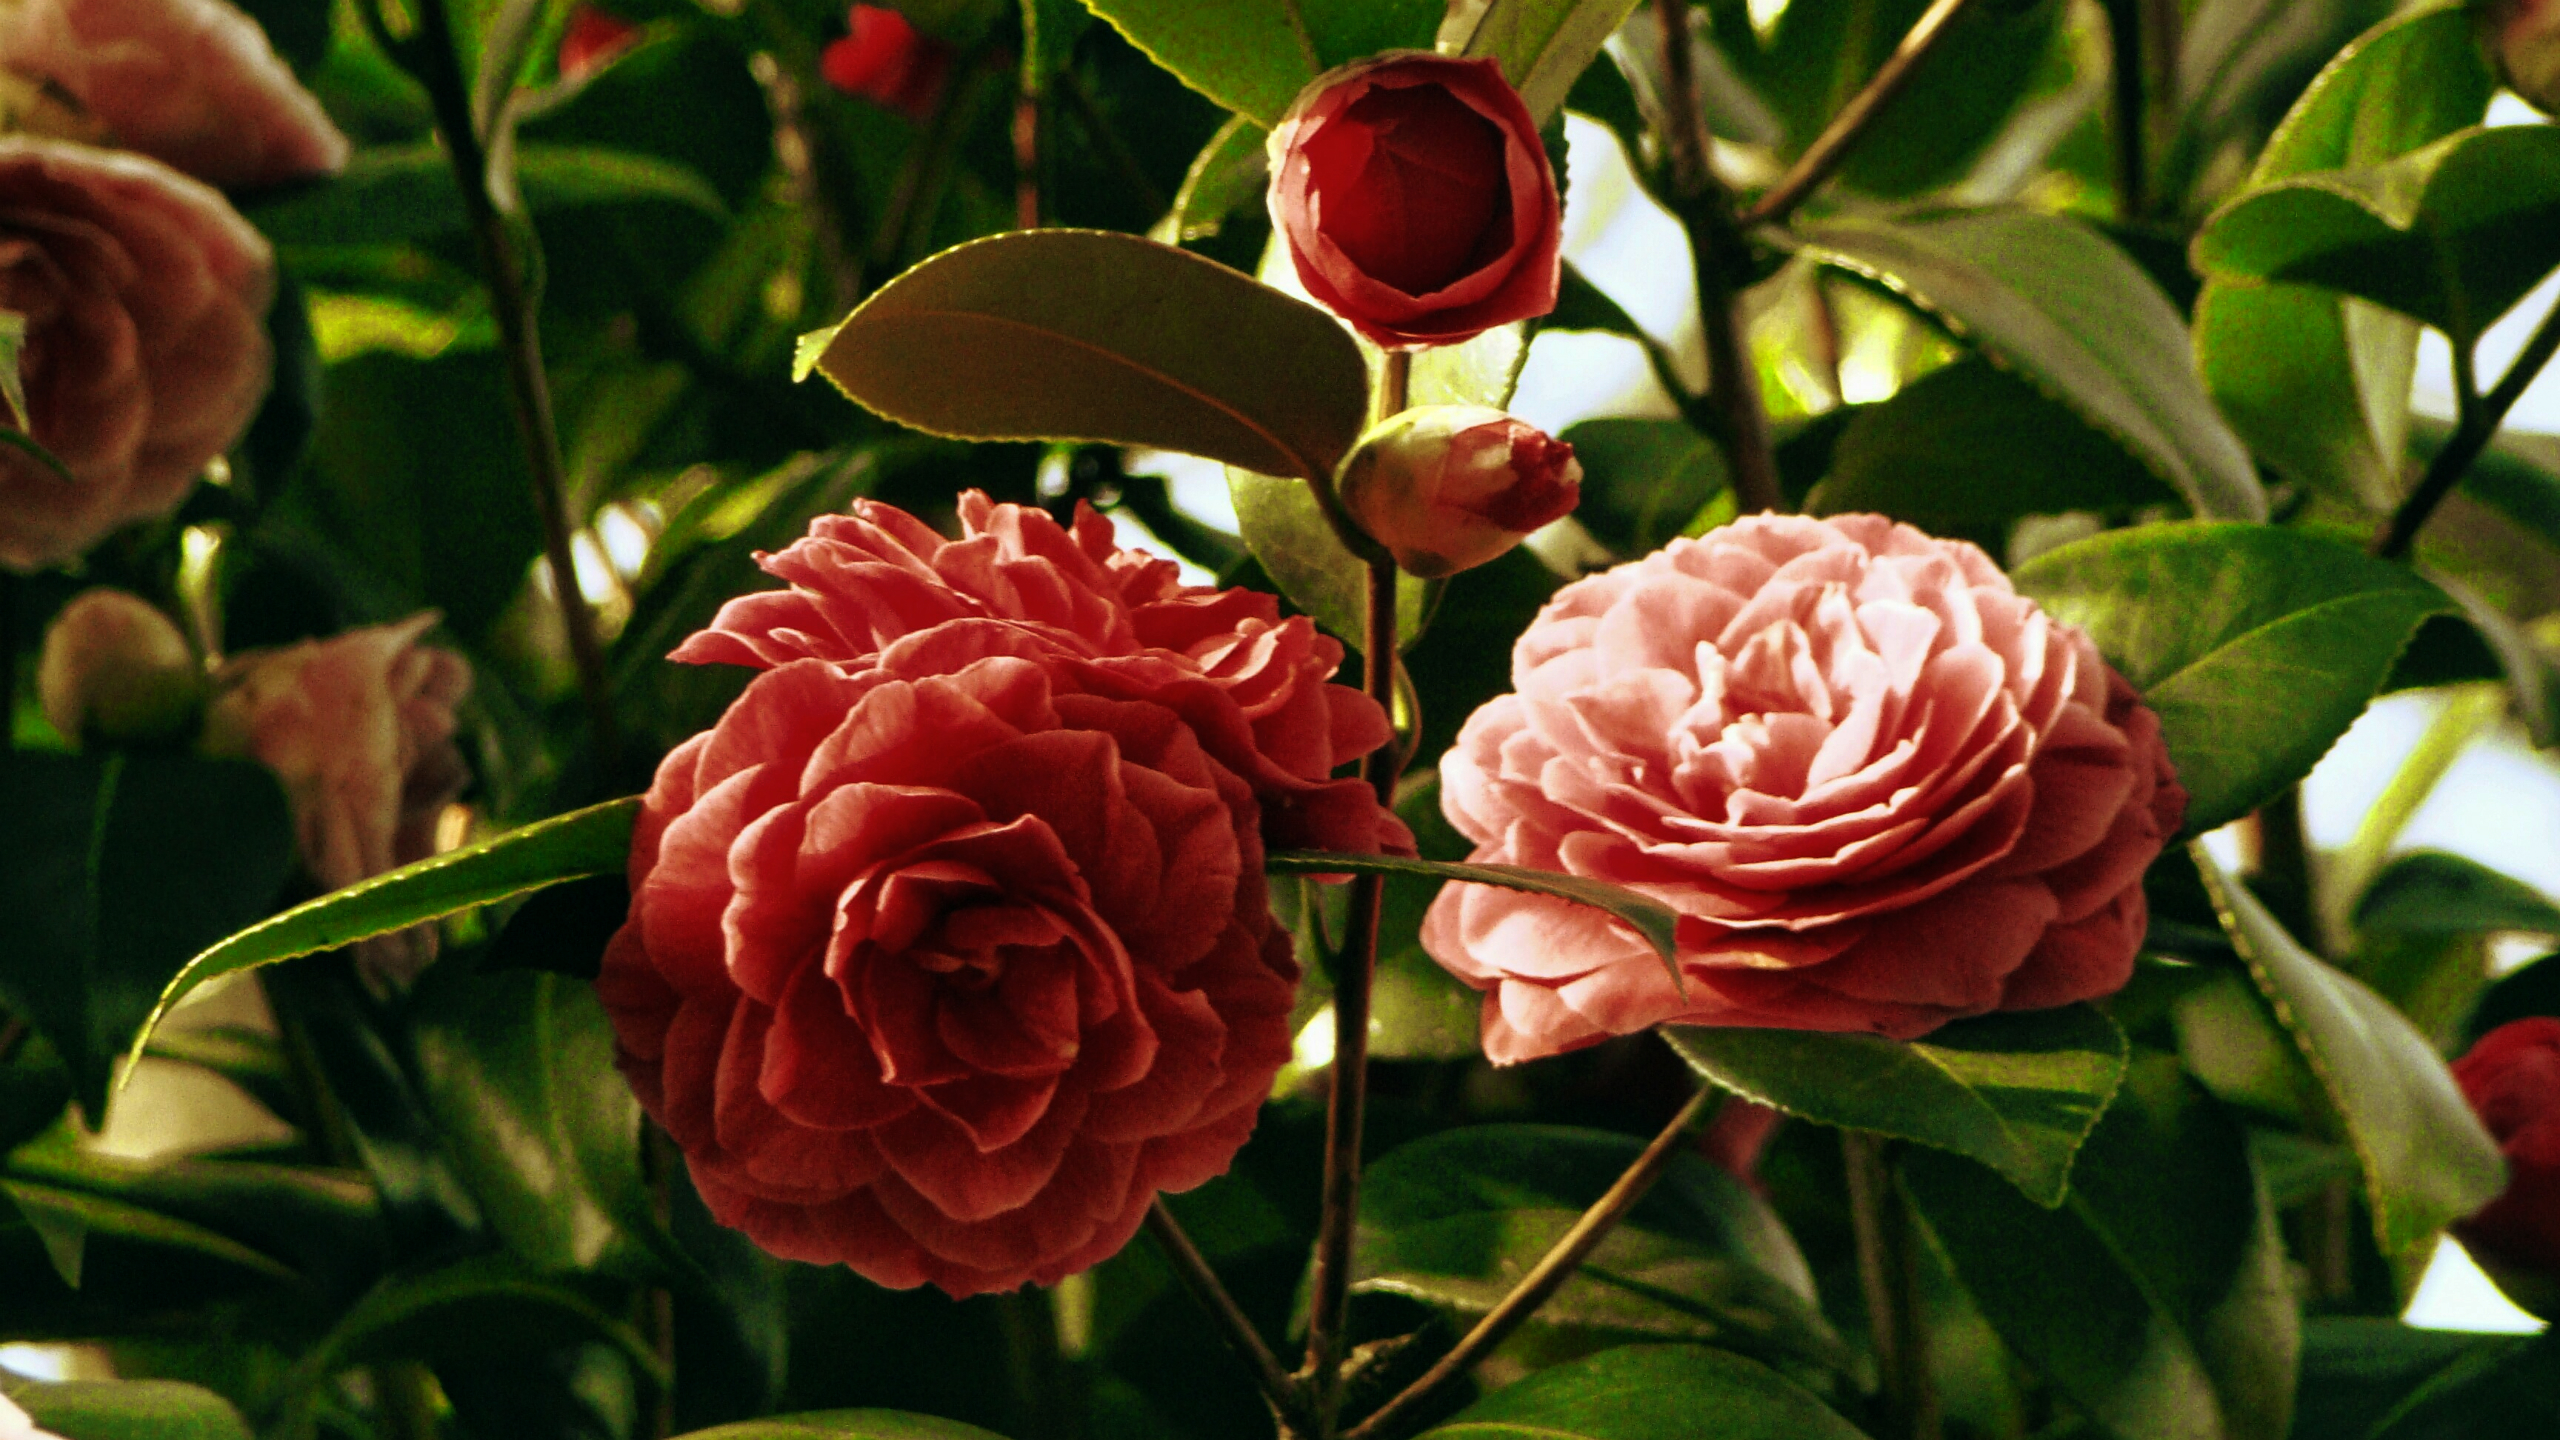 Stock images—2560×1440—Flowers—40—Camellia—Red—Formal double form